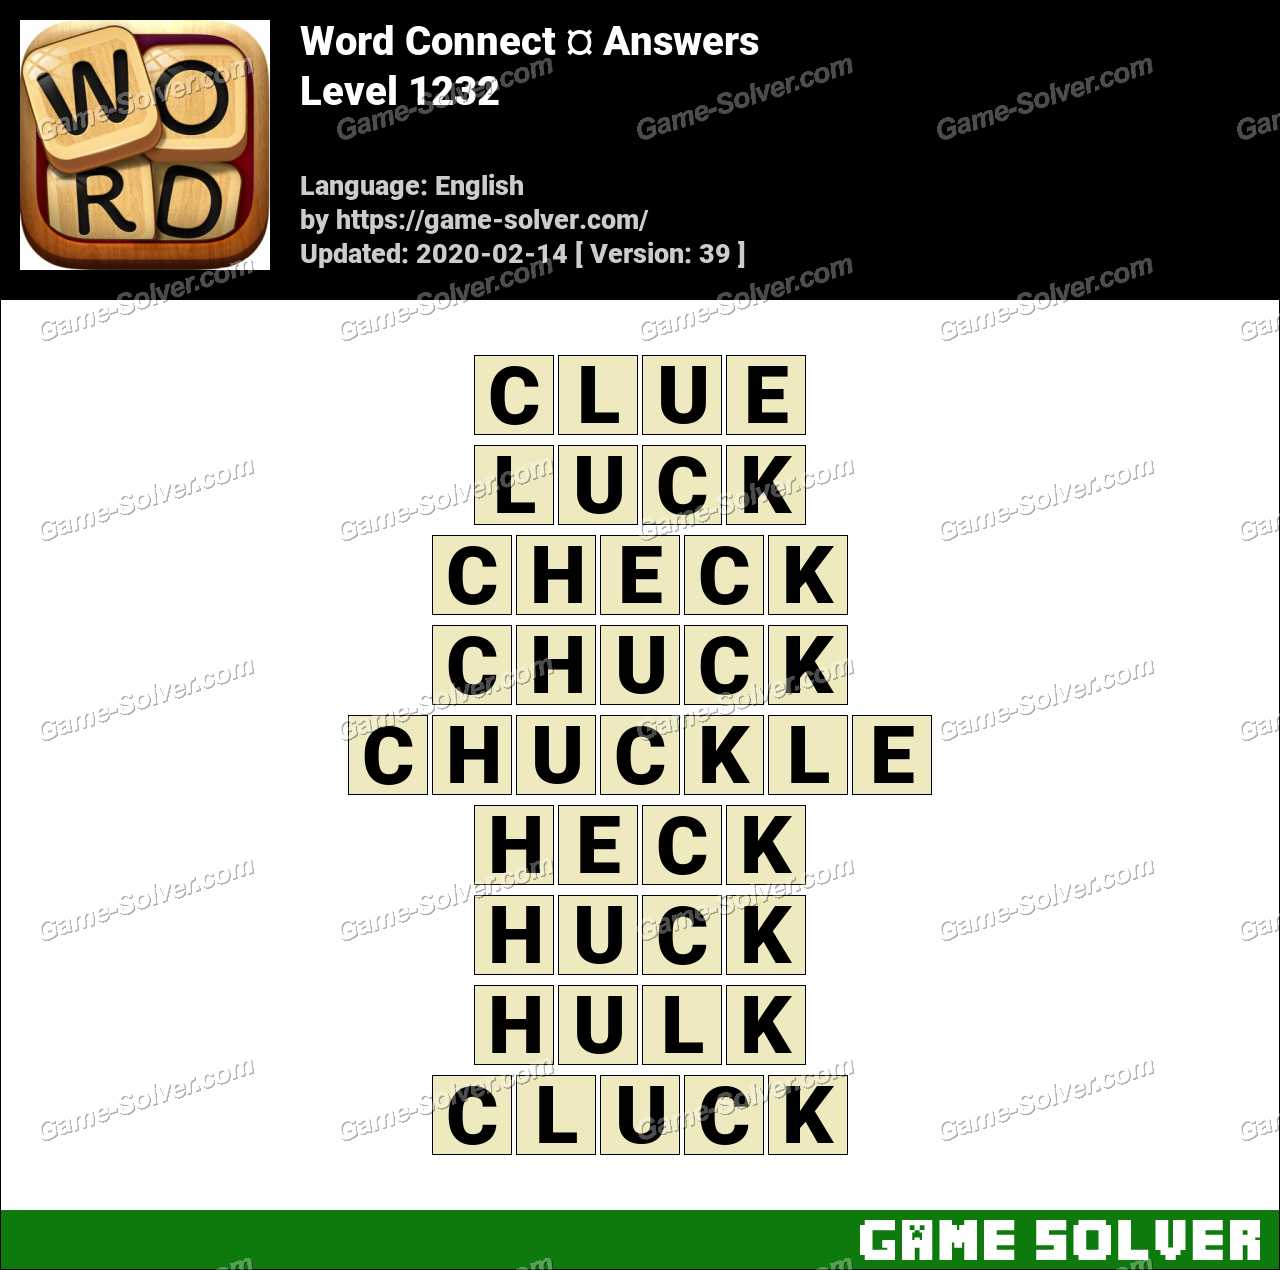 Word Connect Level 1232 Answers